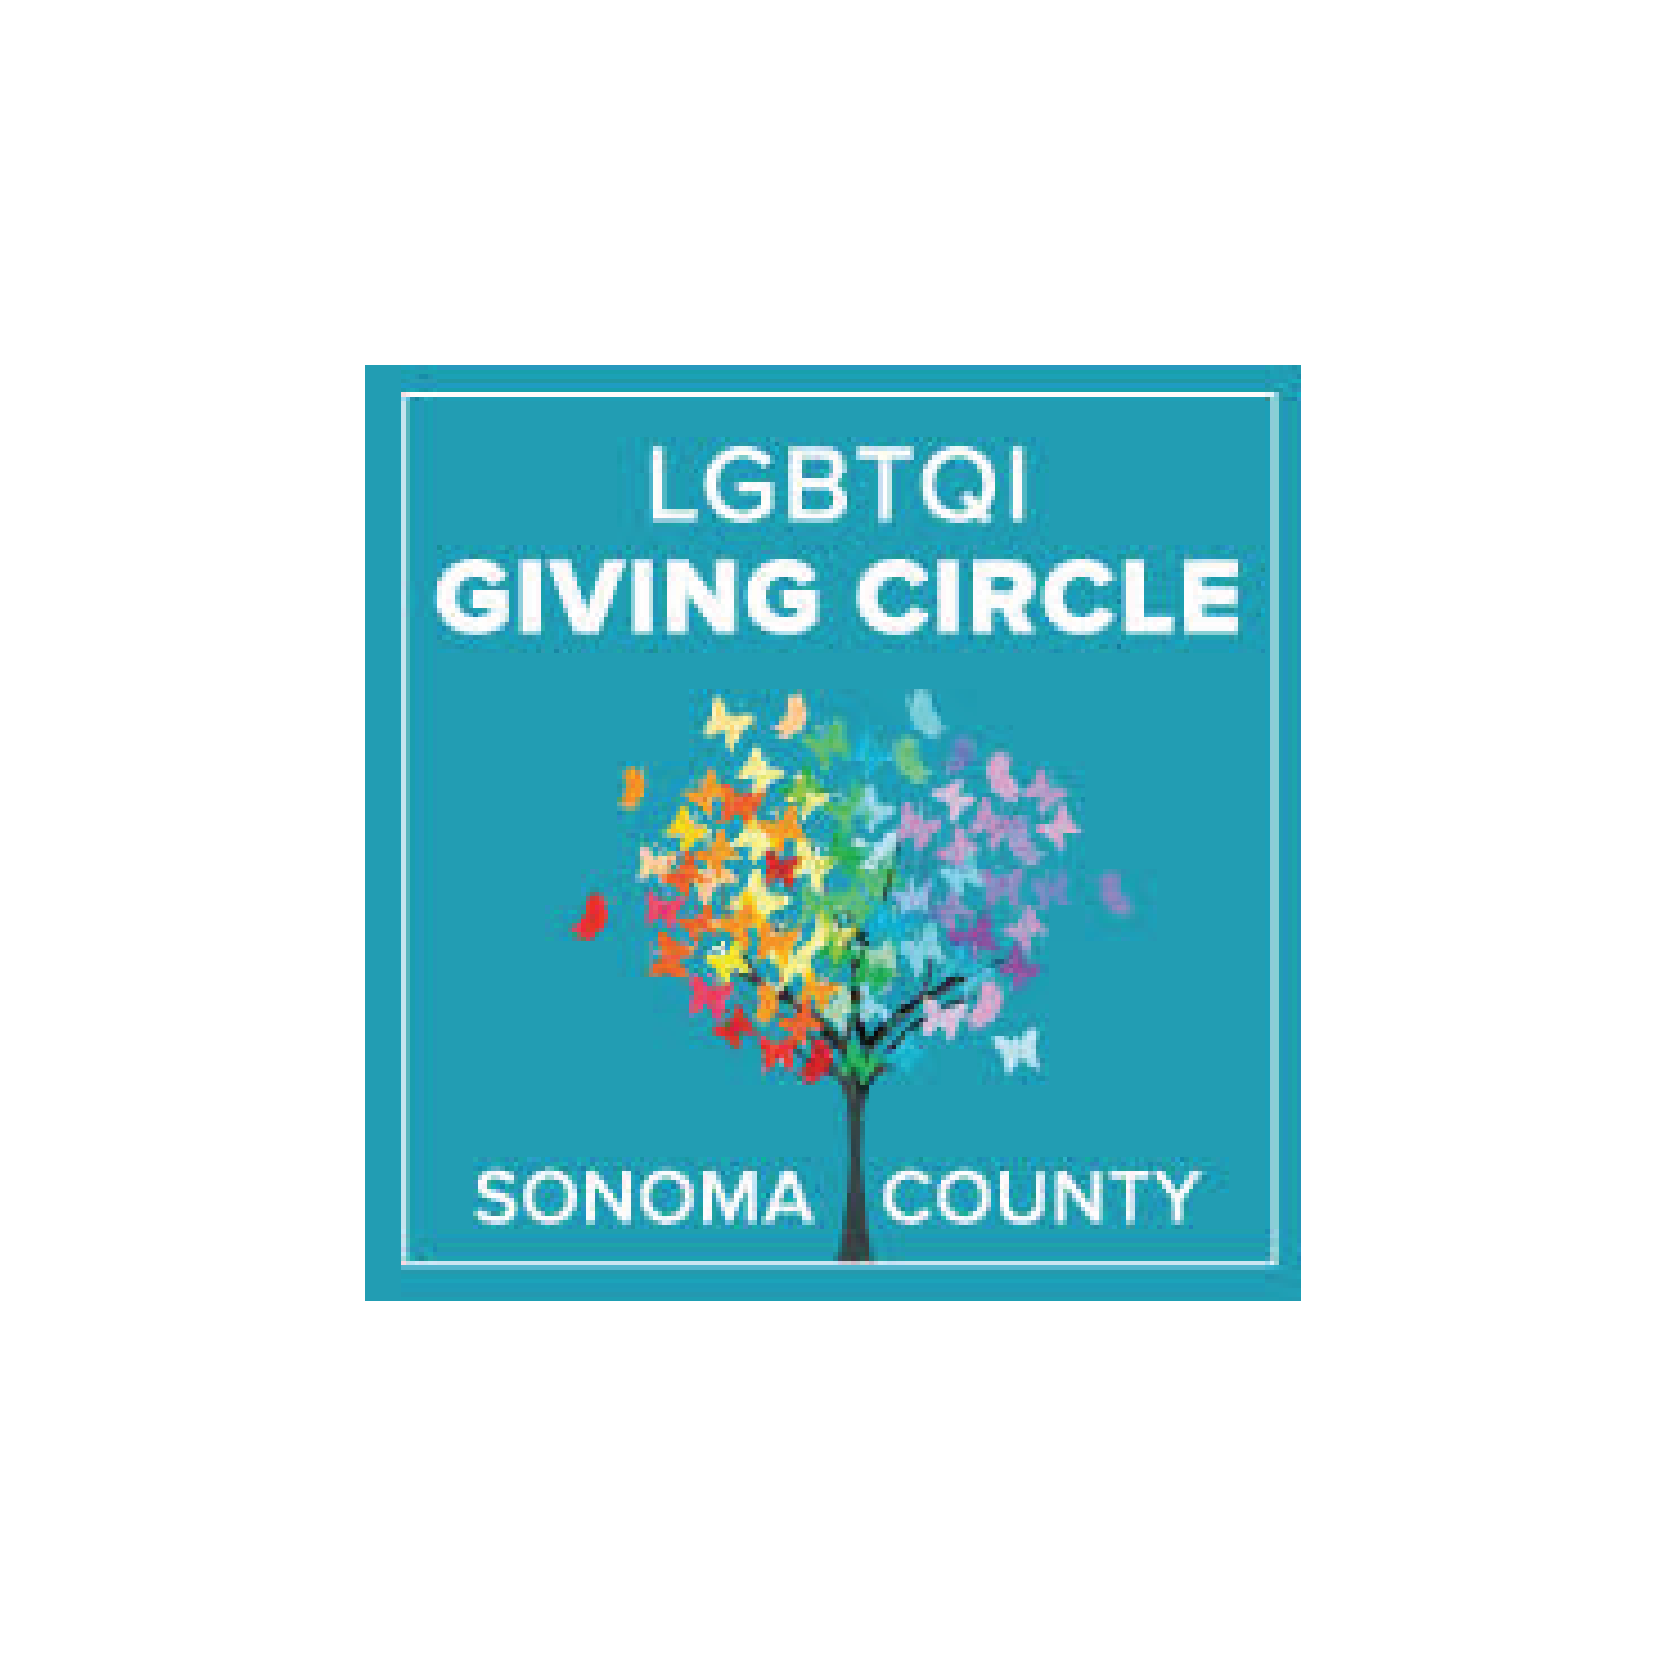 Community Foundation Sonoma County: LGBTQI Giving Circle